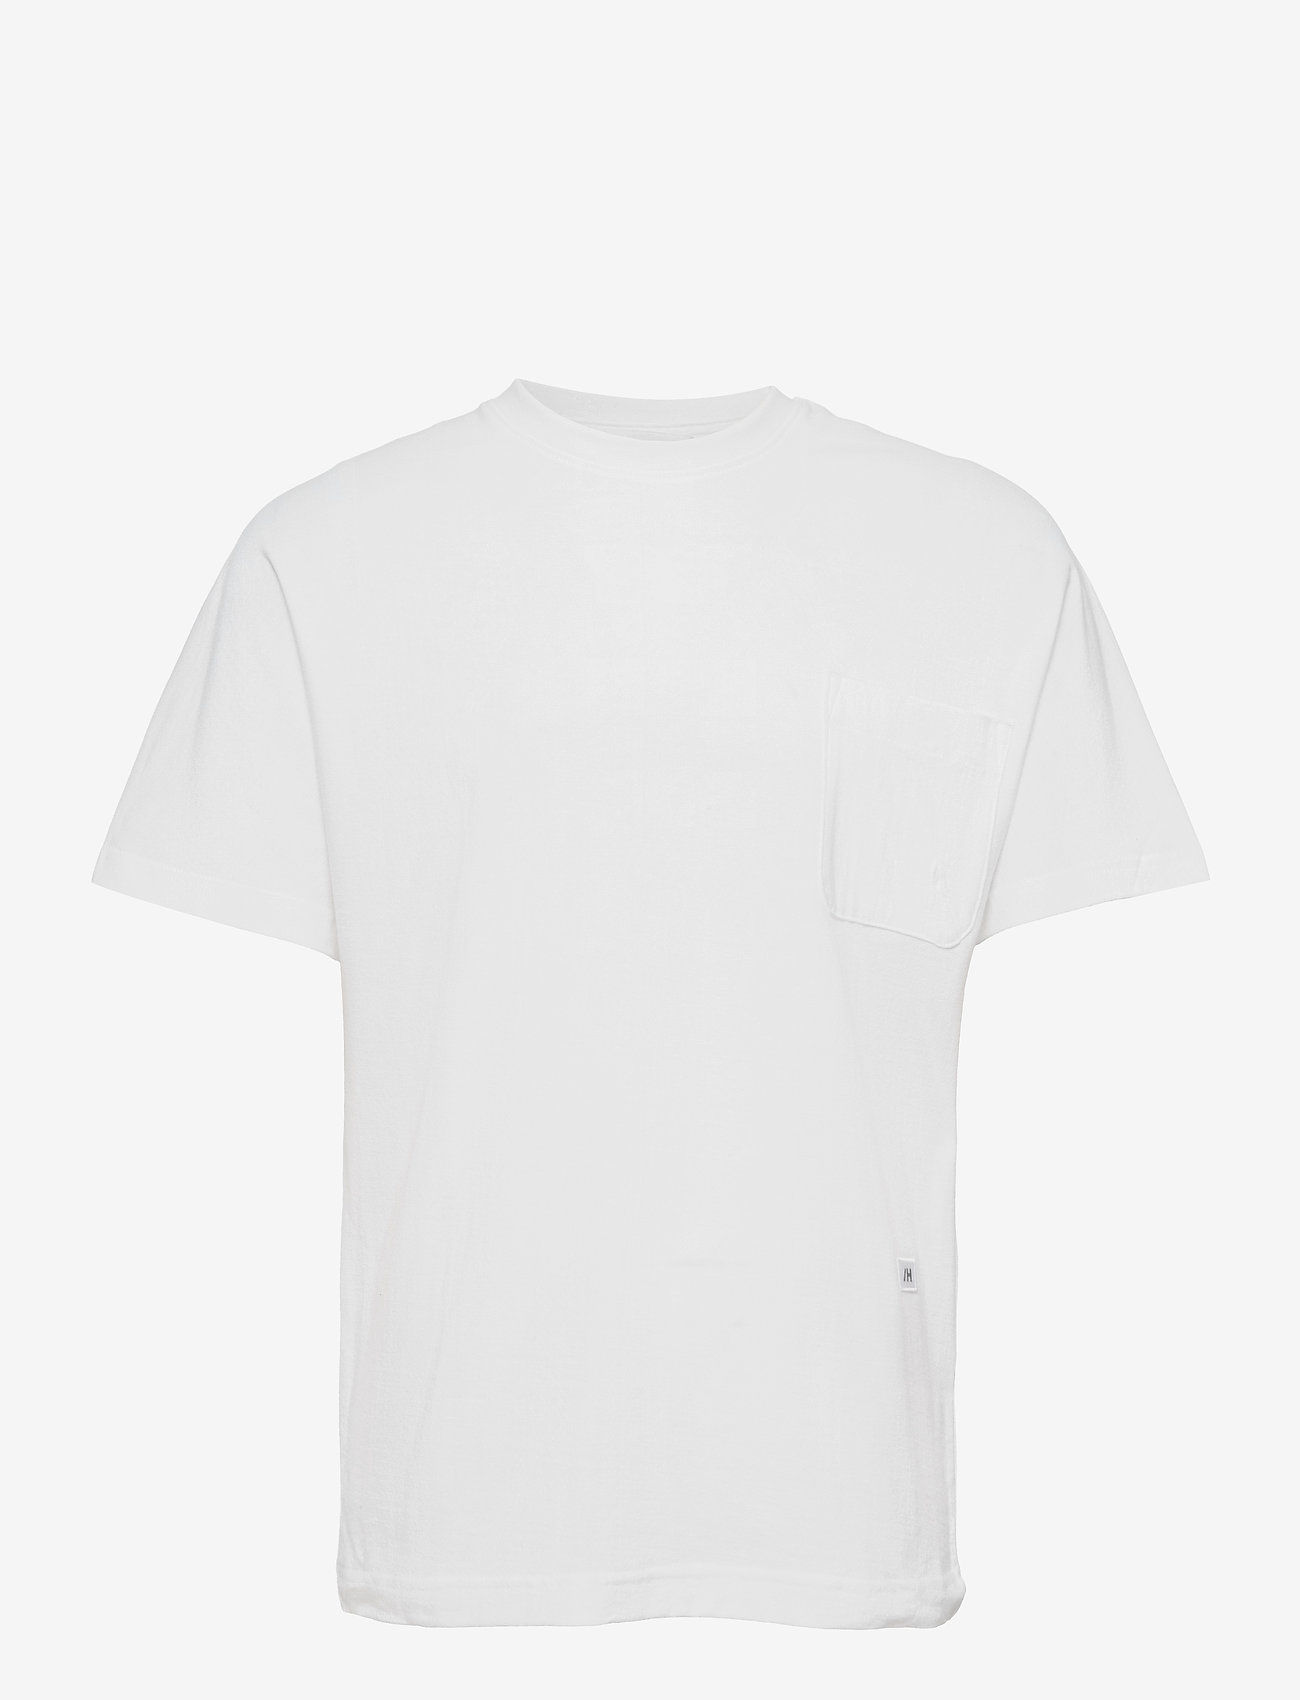 Selected Homme - SLHRELAXALBION SS O-NECK TEE G - podstawowe koszulki - bright white - 0